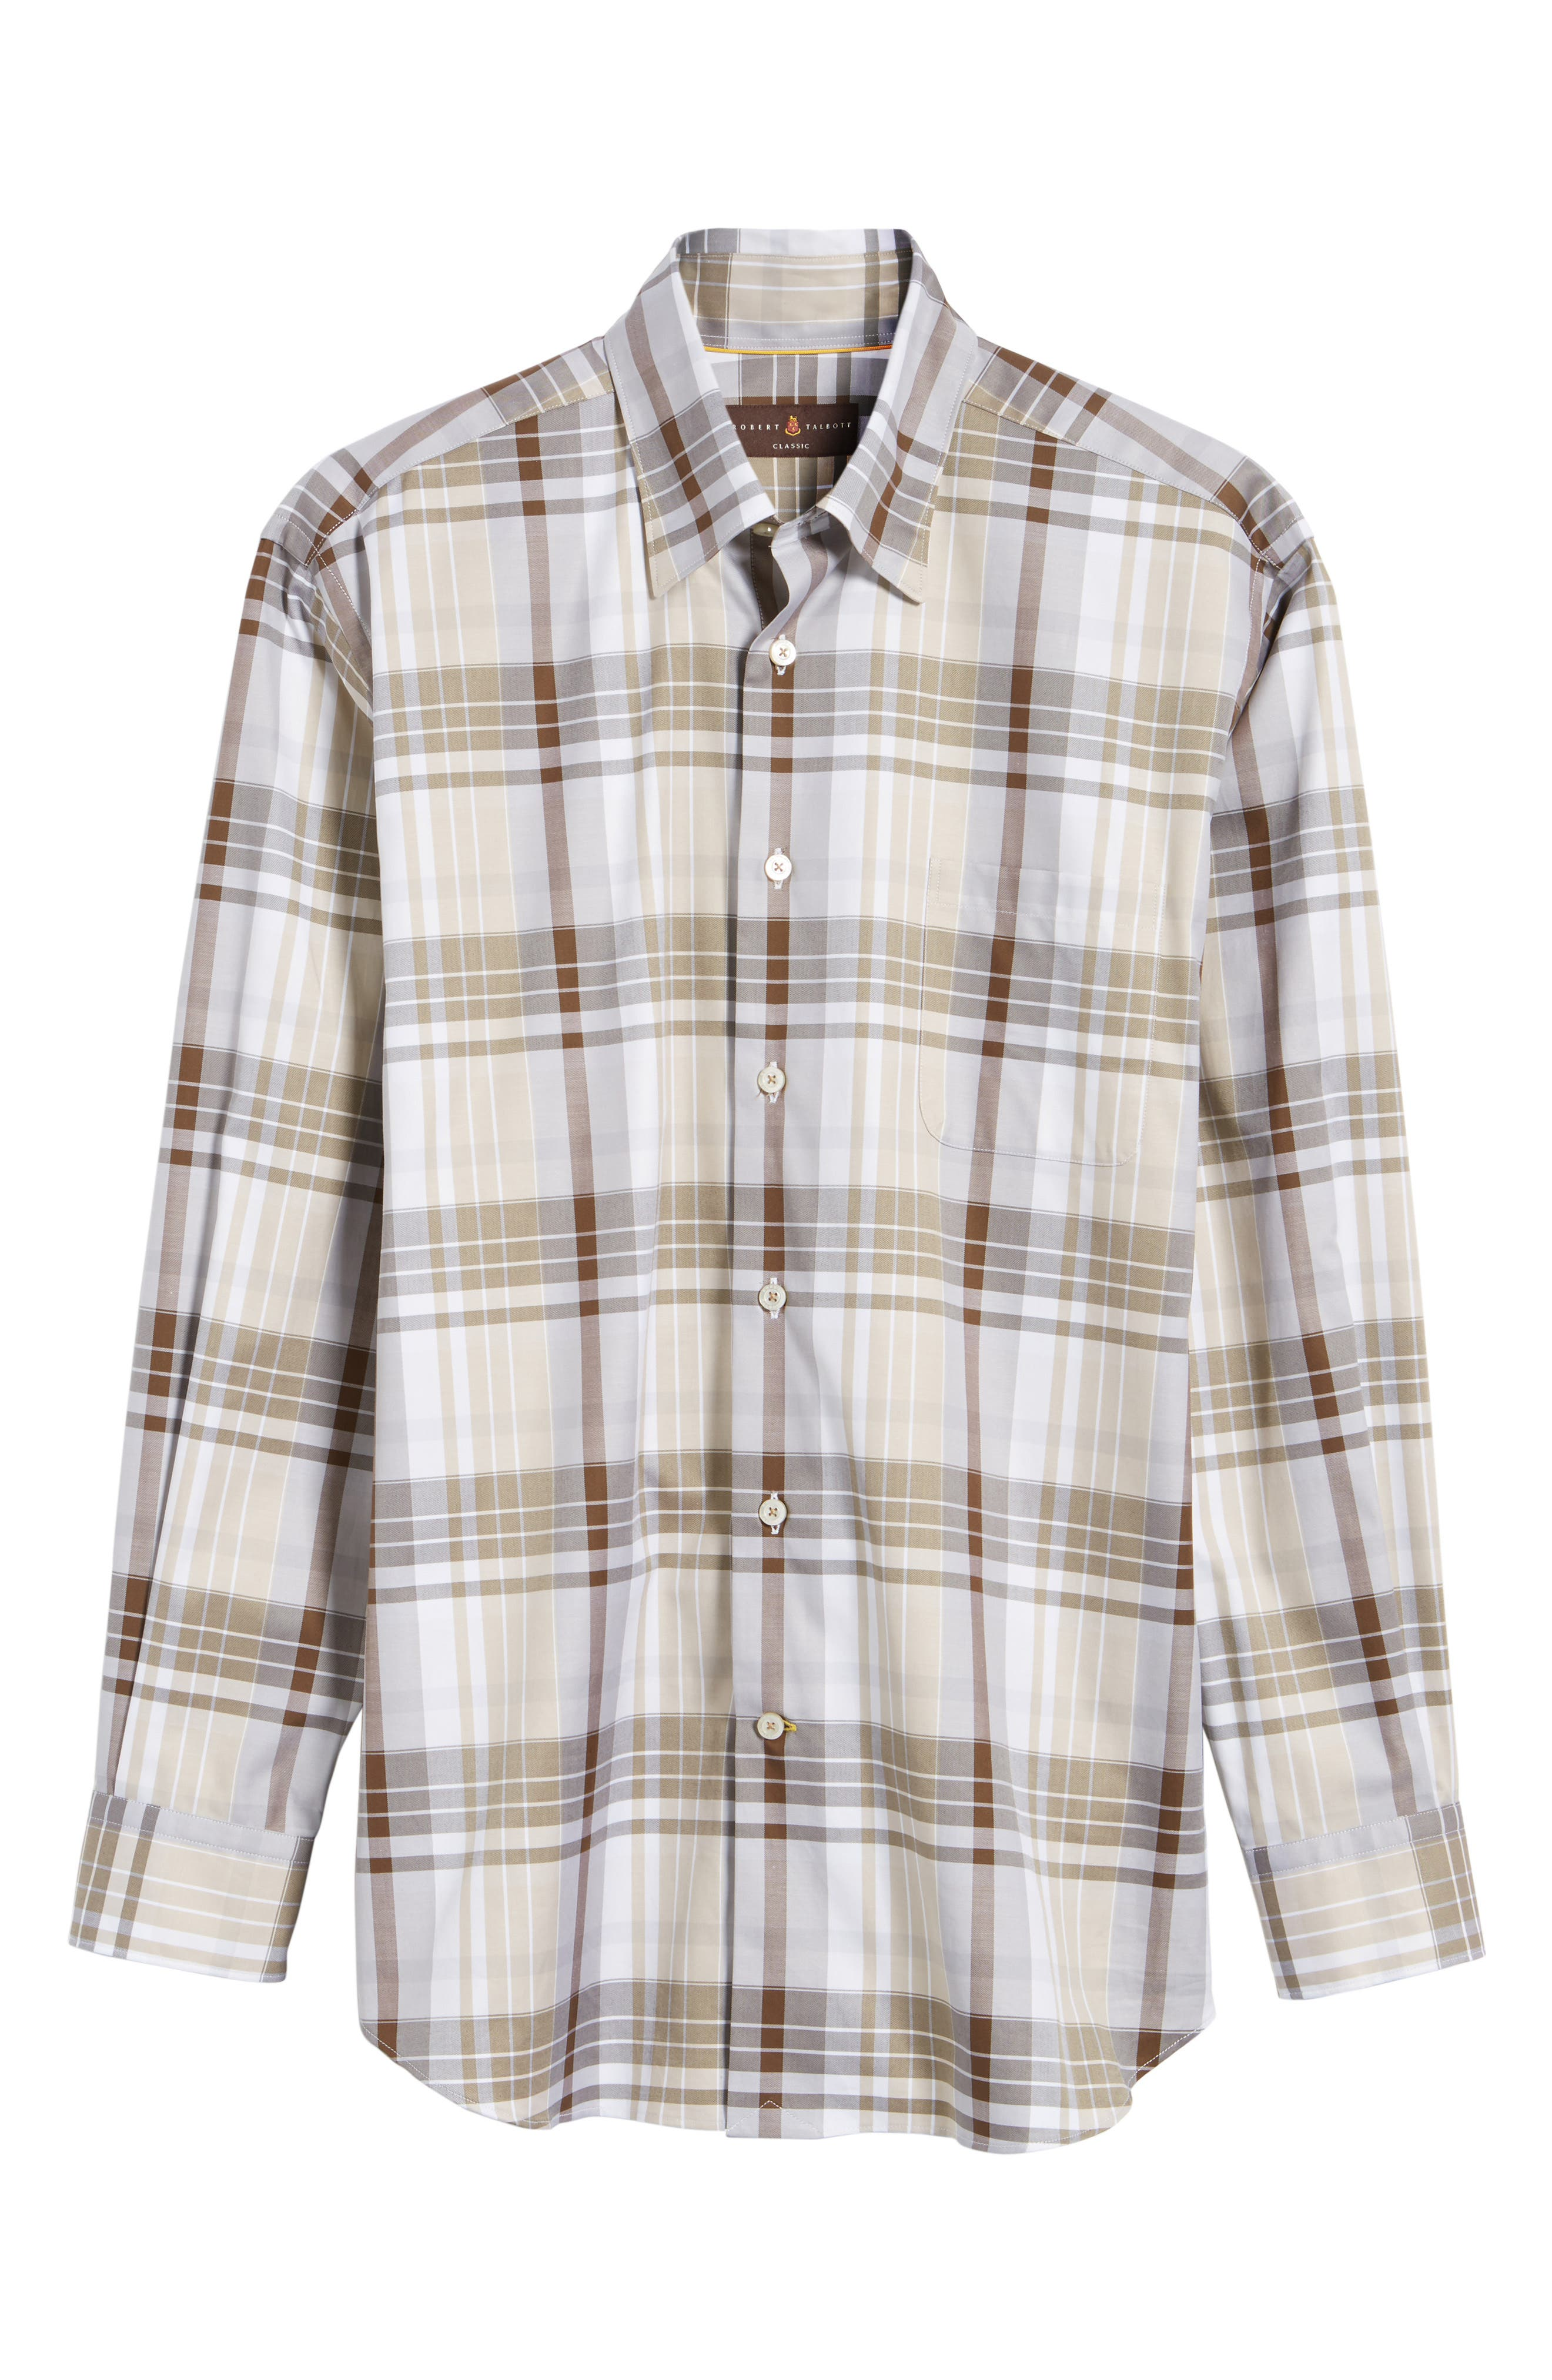 Anderson Classic Fit Plaid Micro Twill Sport Shirt,                             Alternate thumbnail 6, color,